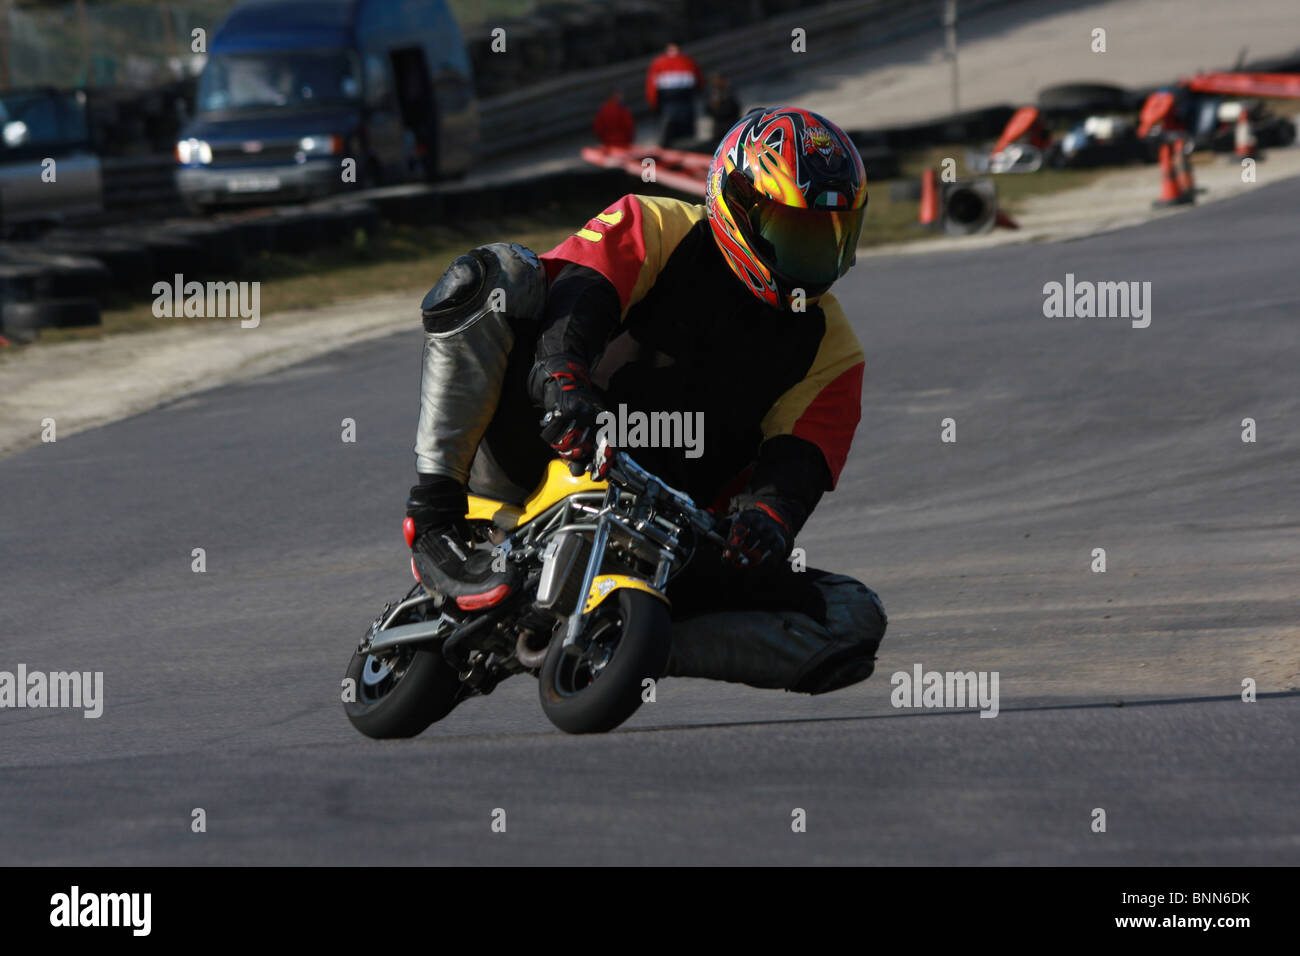 A Man Racing On A Mini Moto On A Race Way   Stock Image